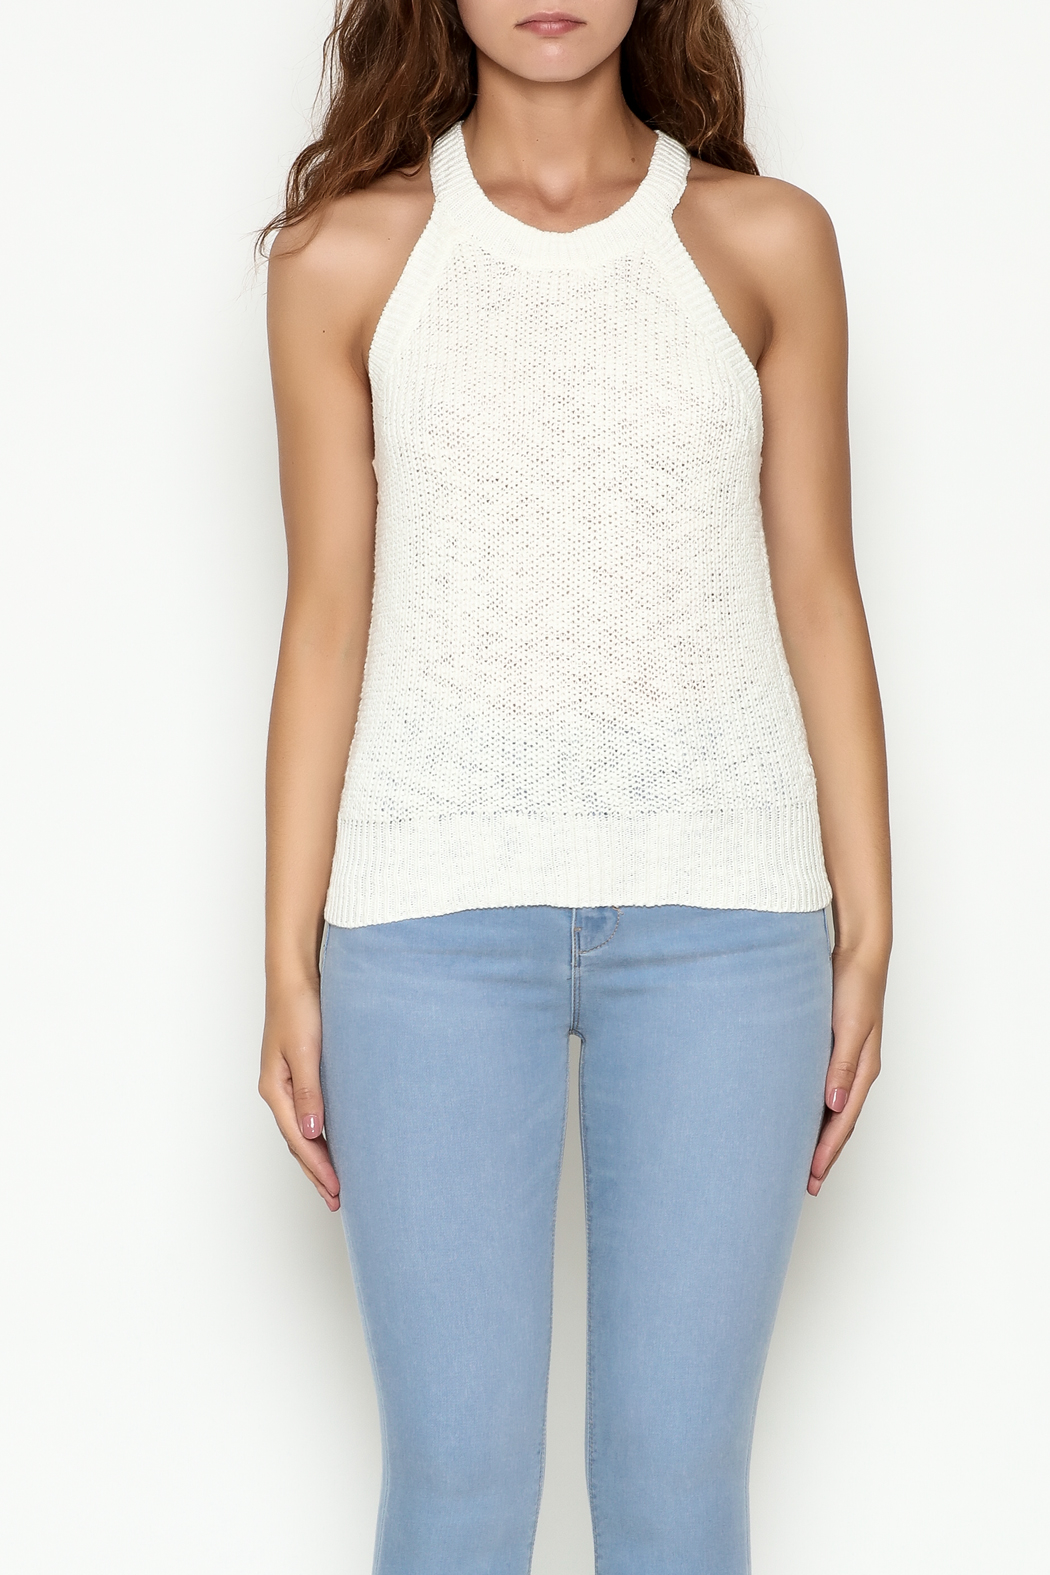 Olive & Oak Cropped White Sweater Tank - Front Full Image